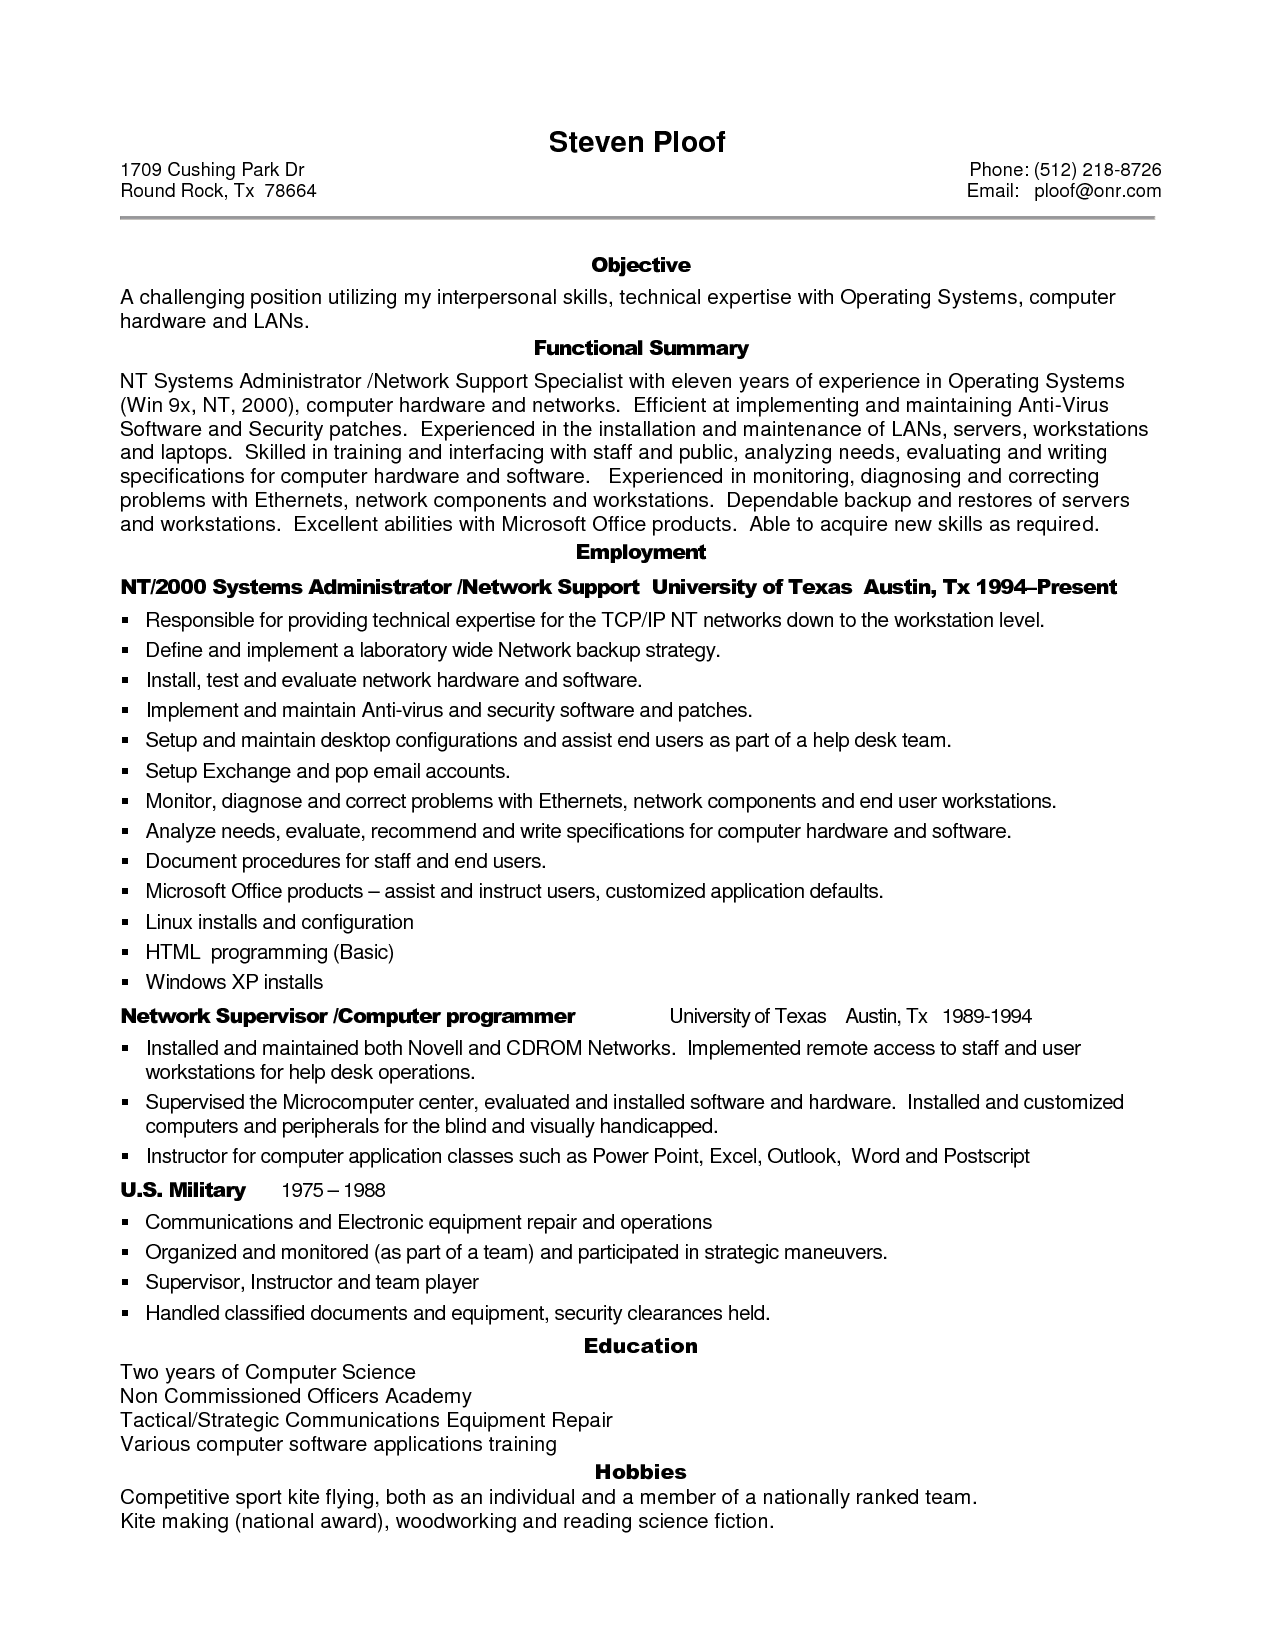 Template Of Resume Sample Resume For Experienced It Professional Sample Resume For